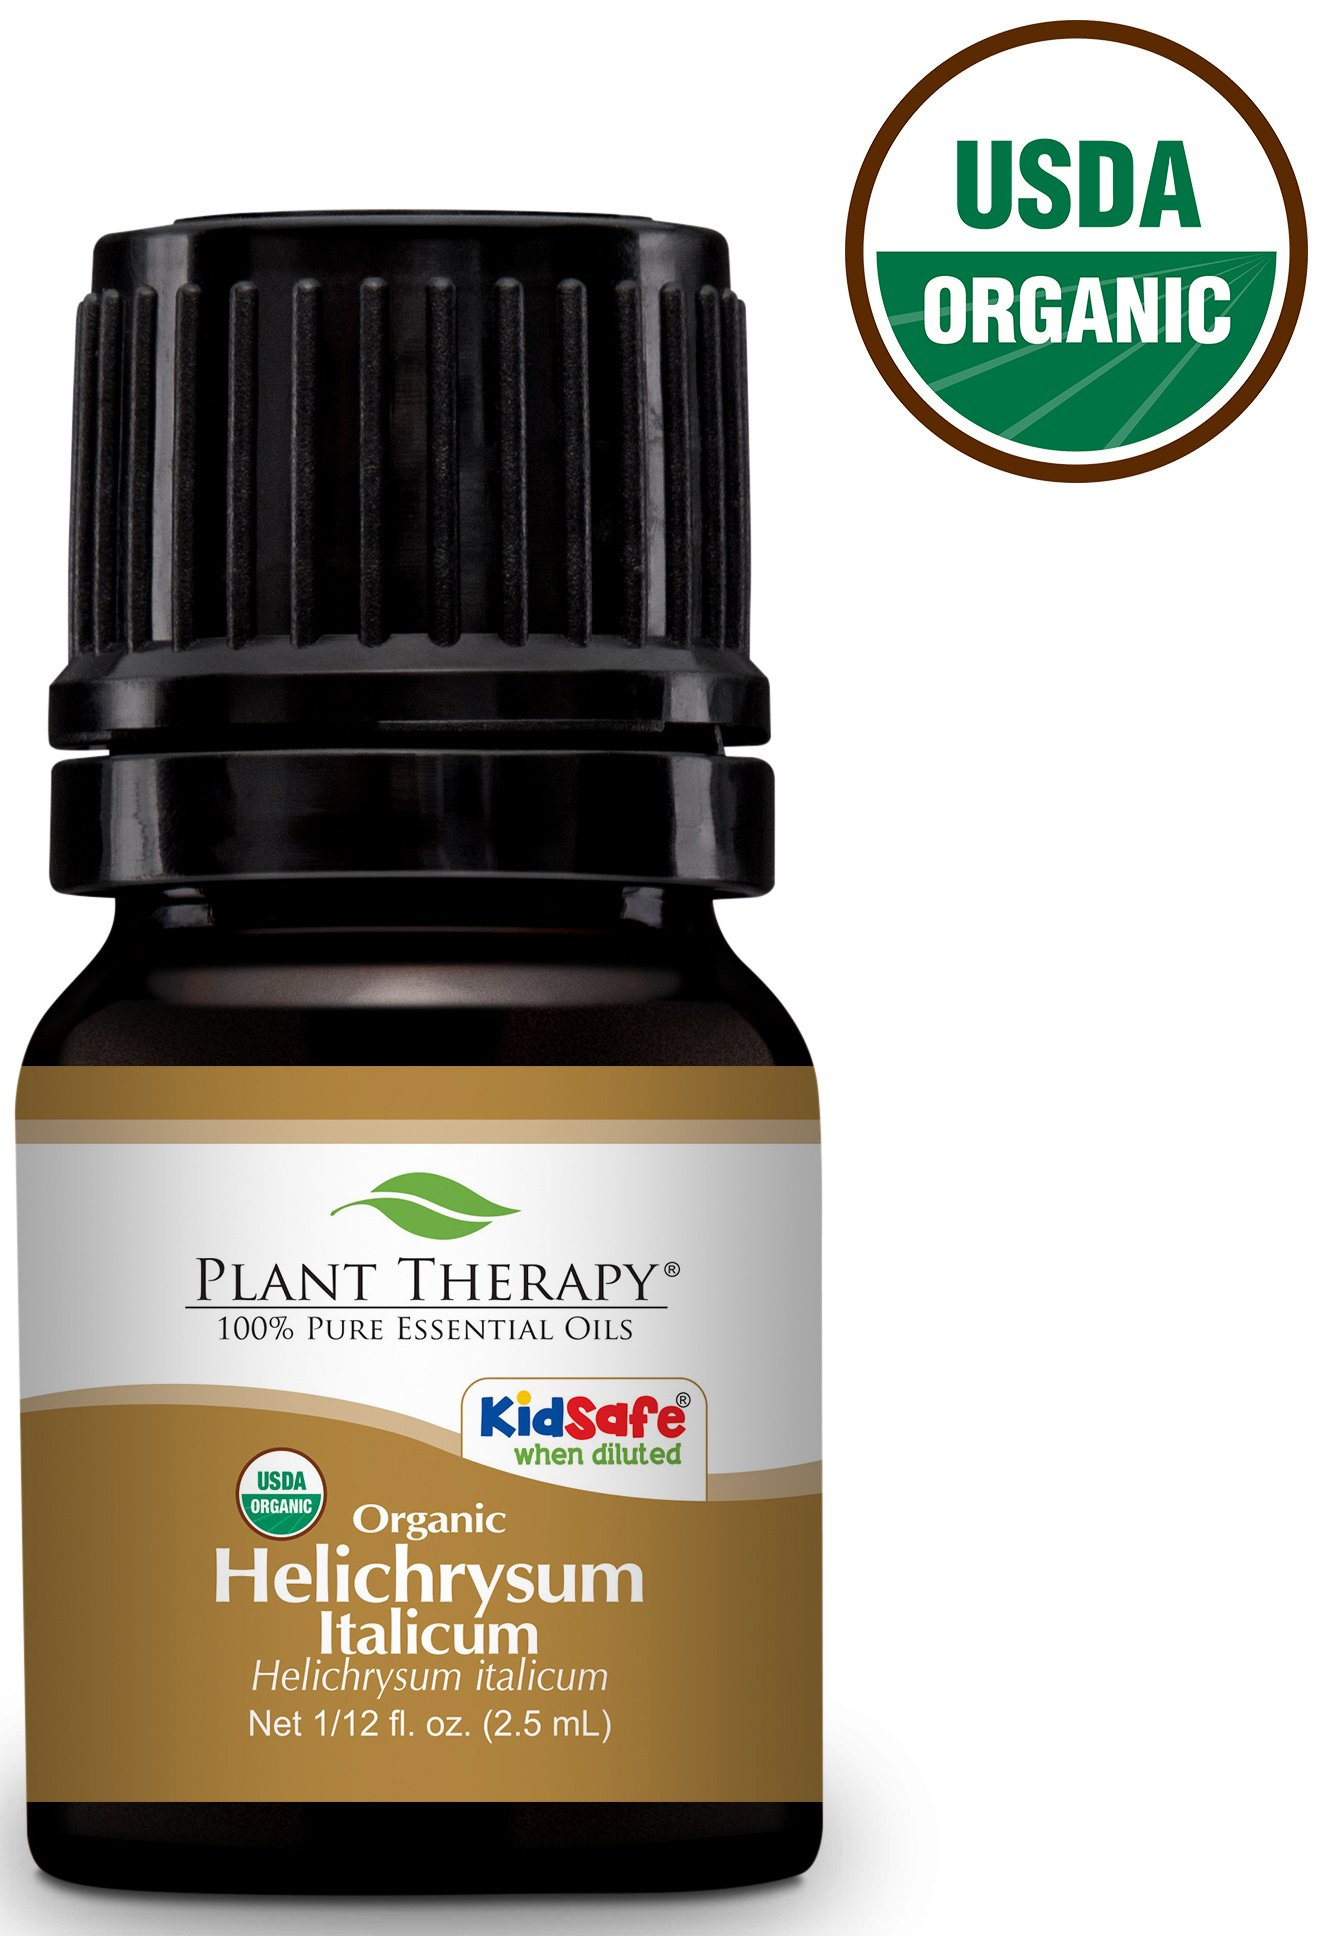 Plant Therapy Helichrysum Italicum Organic Essential Oil 2.5 mL (1/12 oz) 100% Pure, Undiluted, Therapeutic Grade